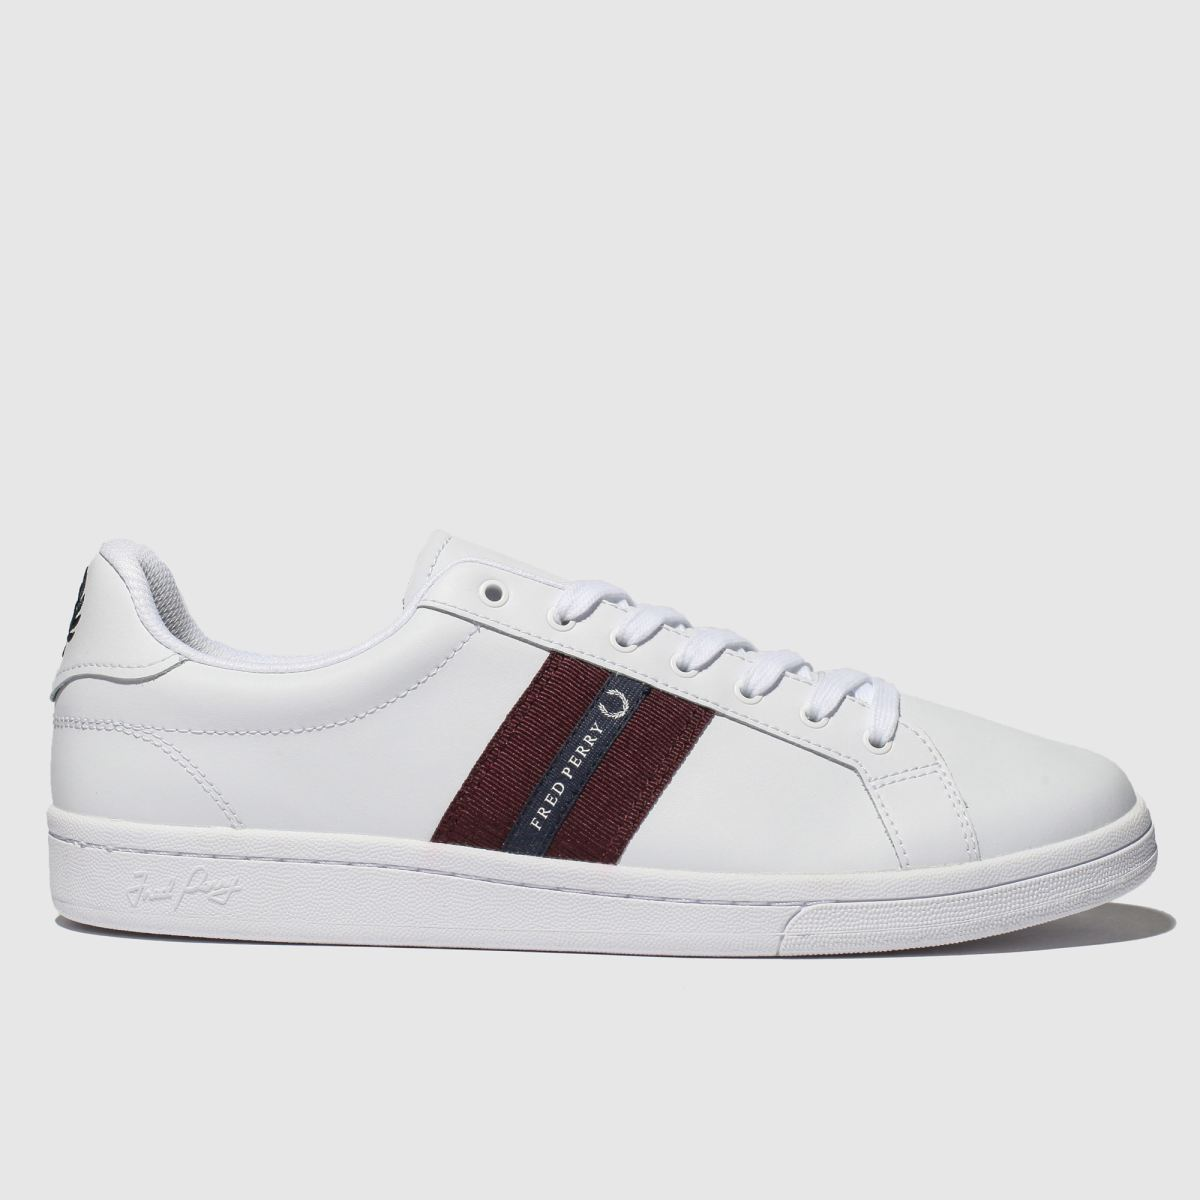 Fred Perry White B721 Leather Tape Trainers